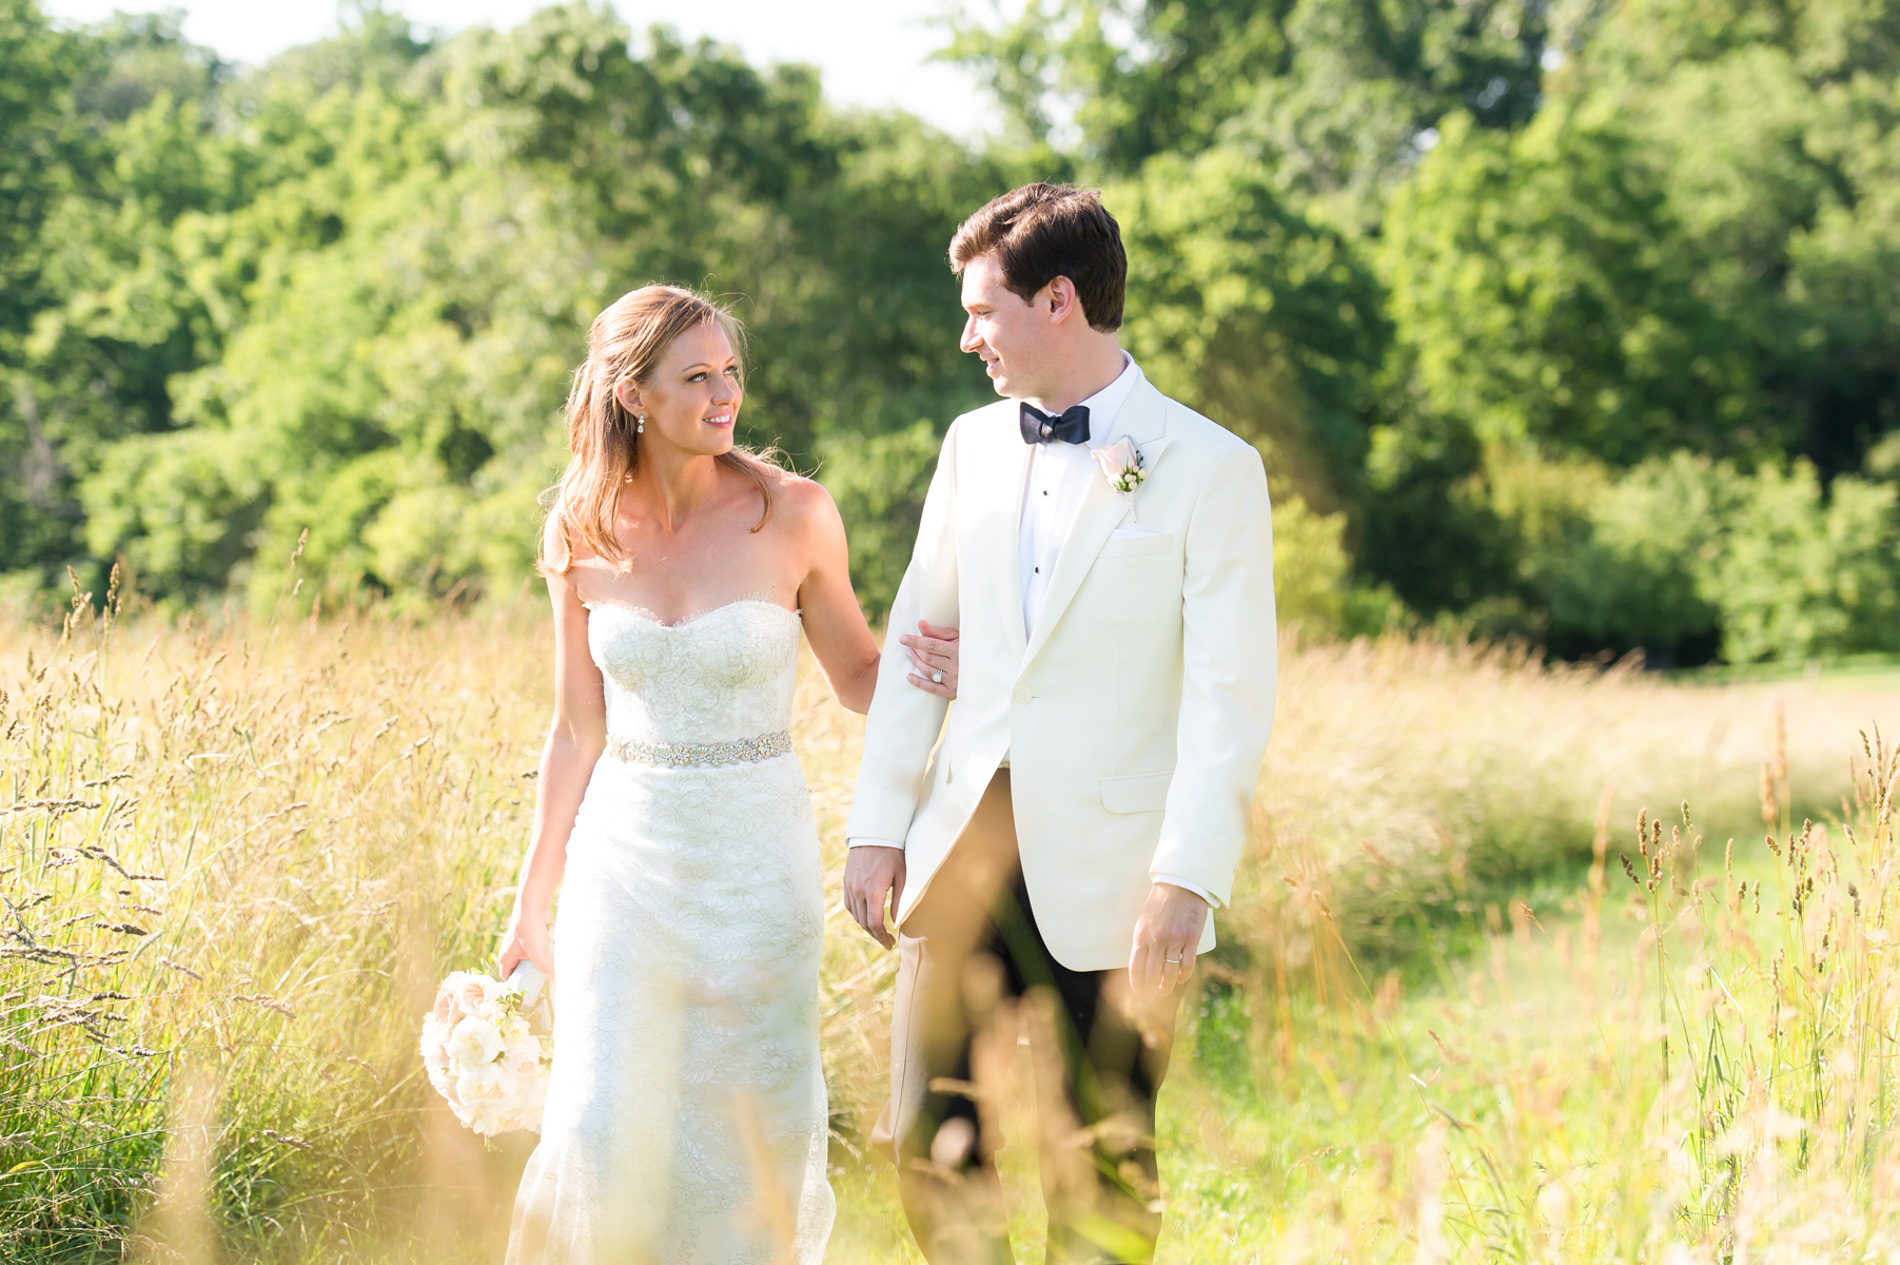 bride and groom walking hand-in-hand outdoors